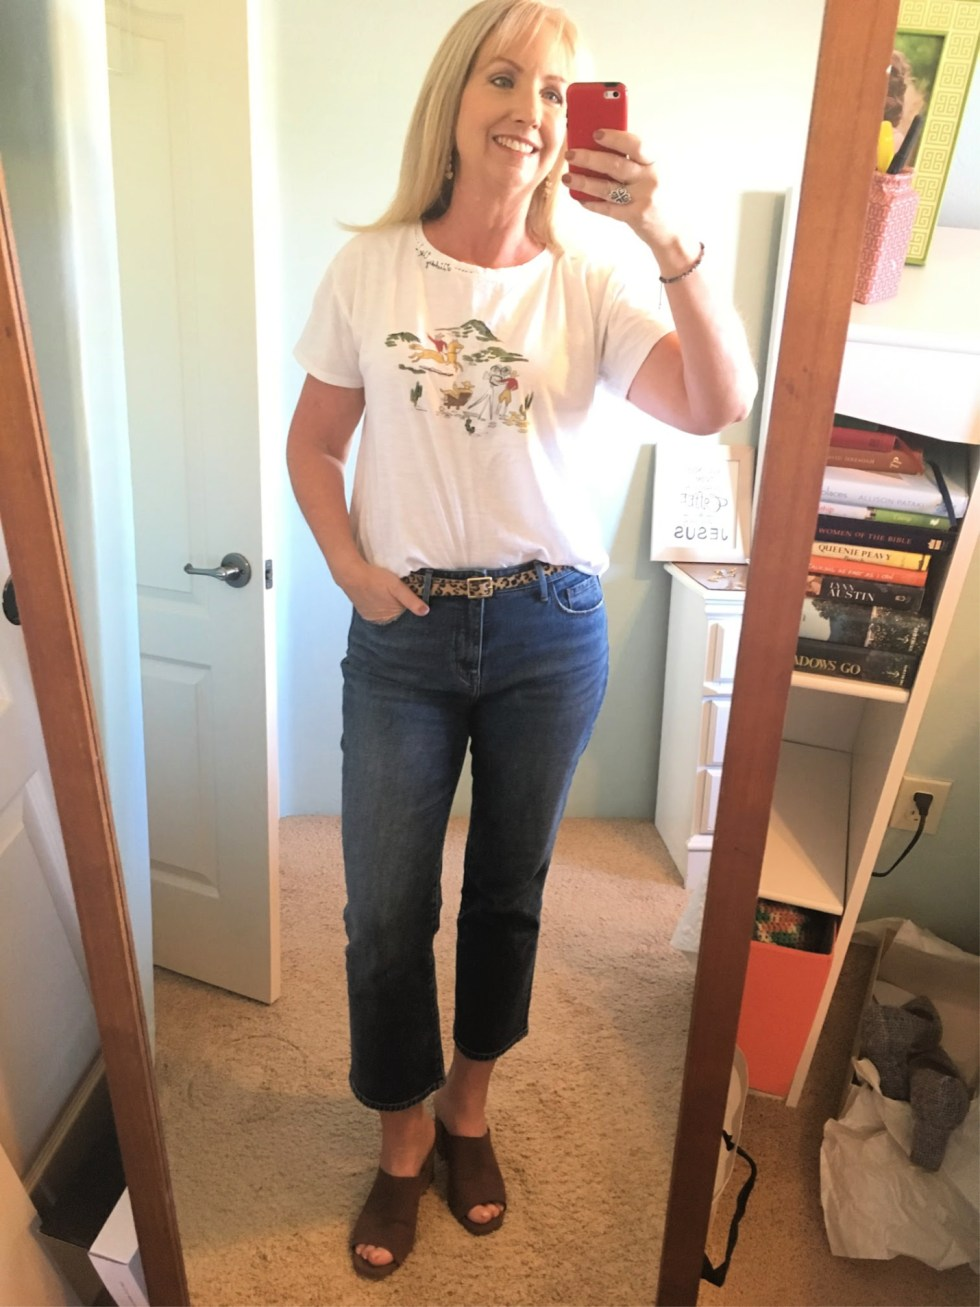 How I Really Dressed for My Day 10 05 2018 03